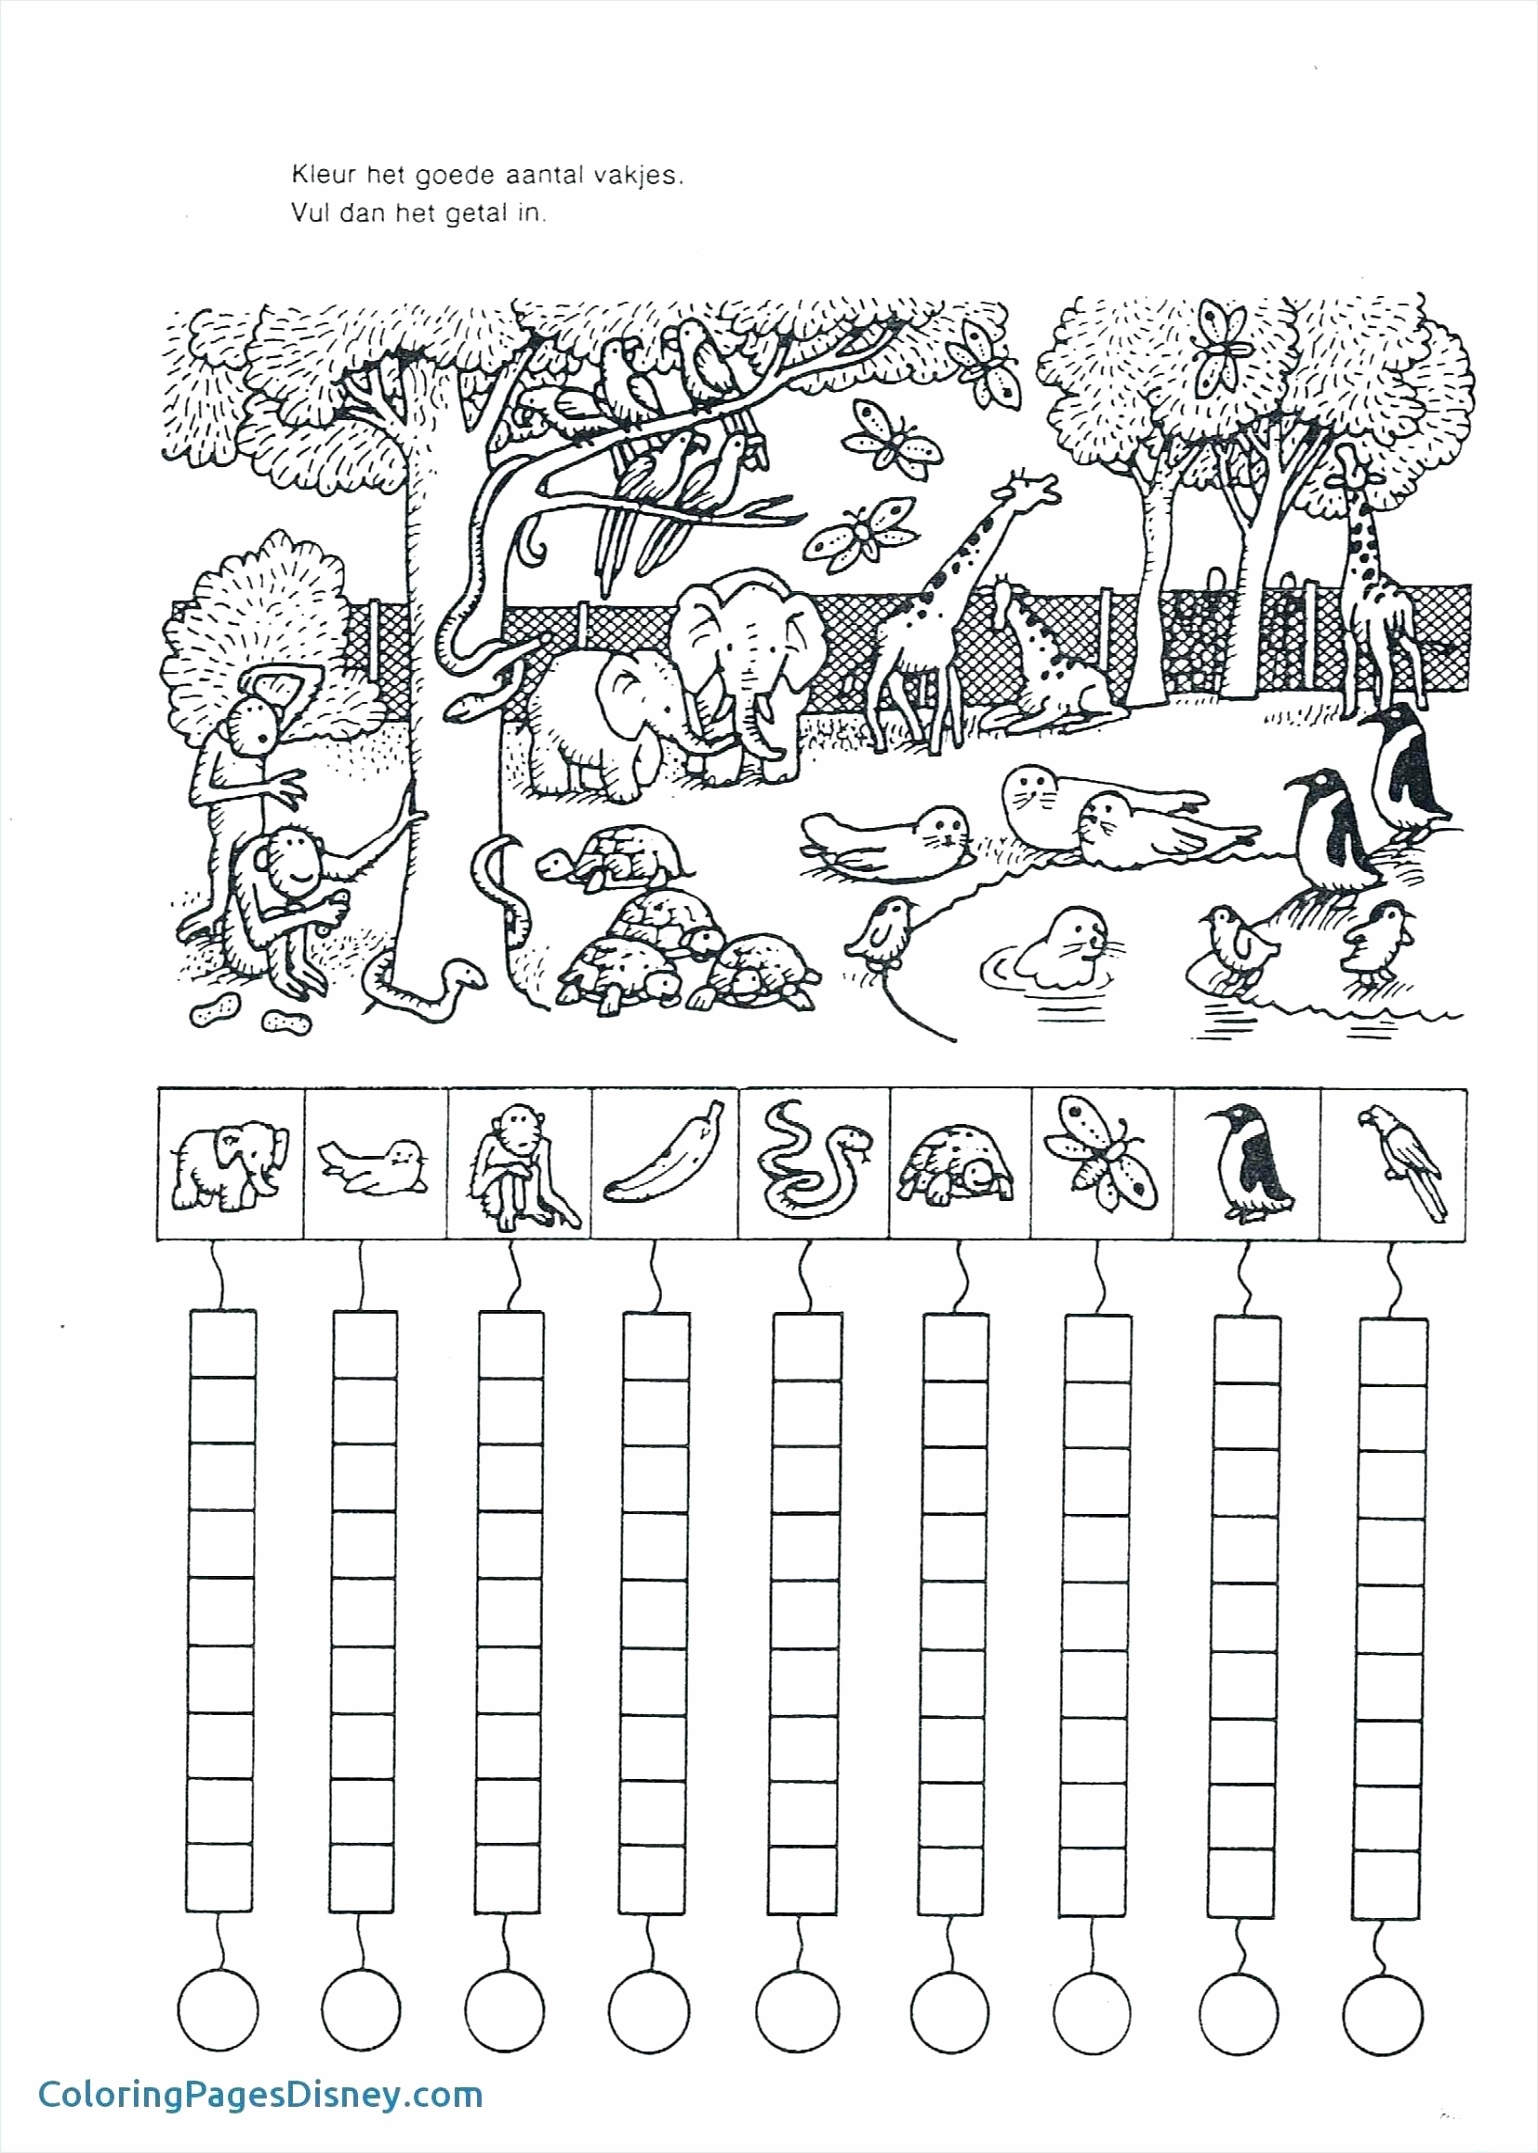 fantastic addition coloring worksheets page for kids math marvelous free pages new with digit sheets atyui